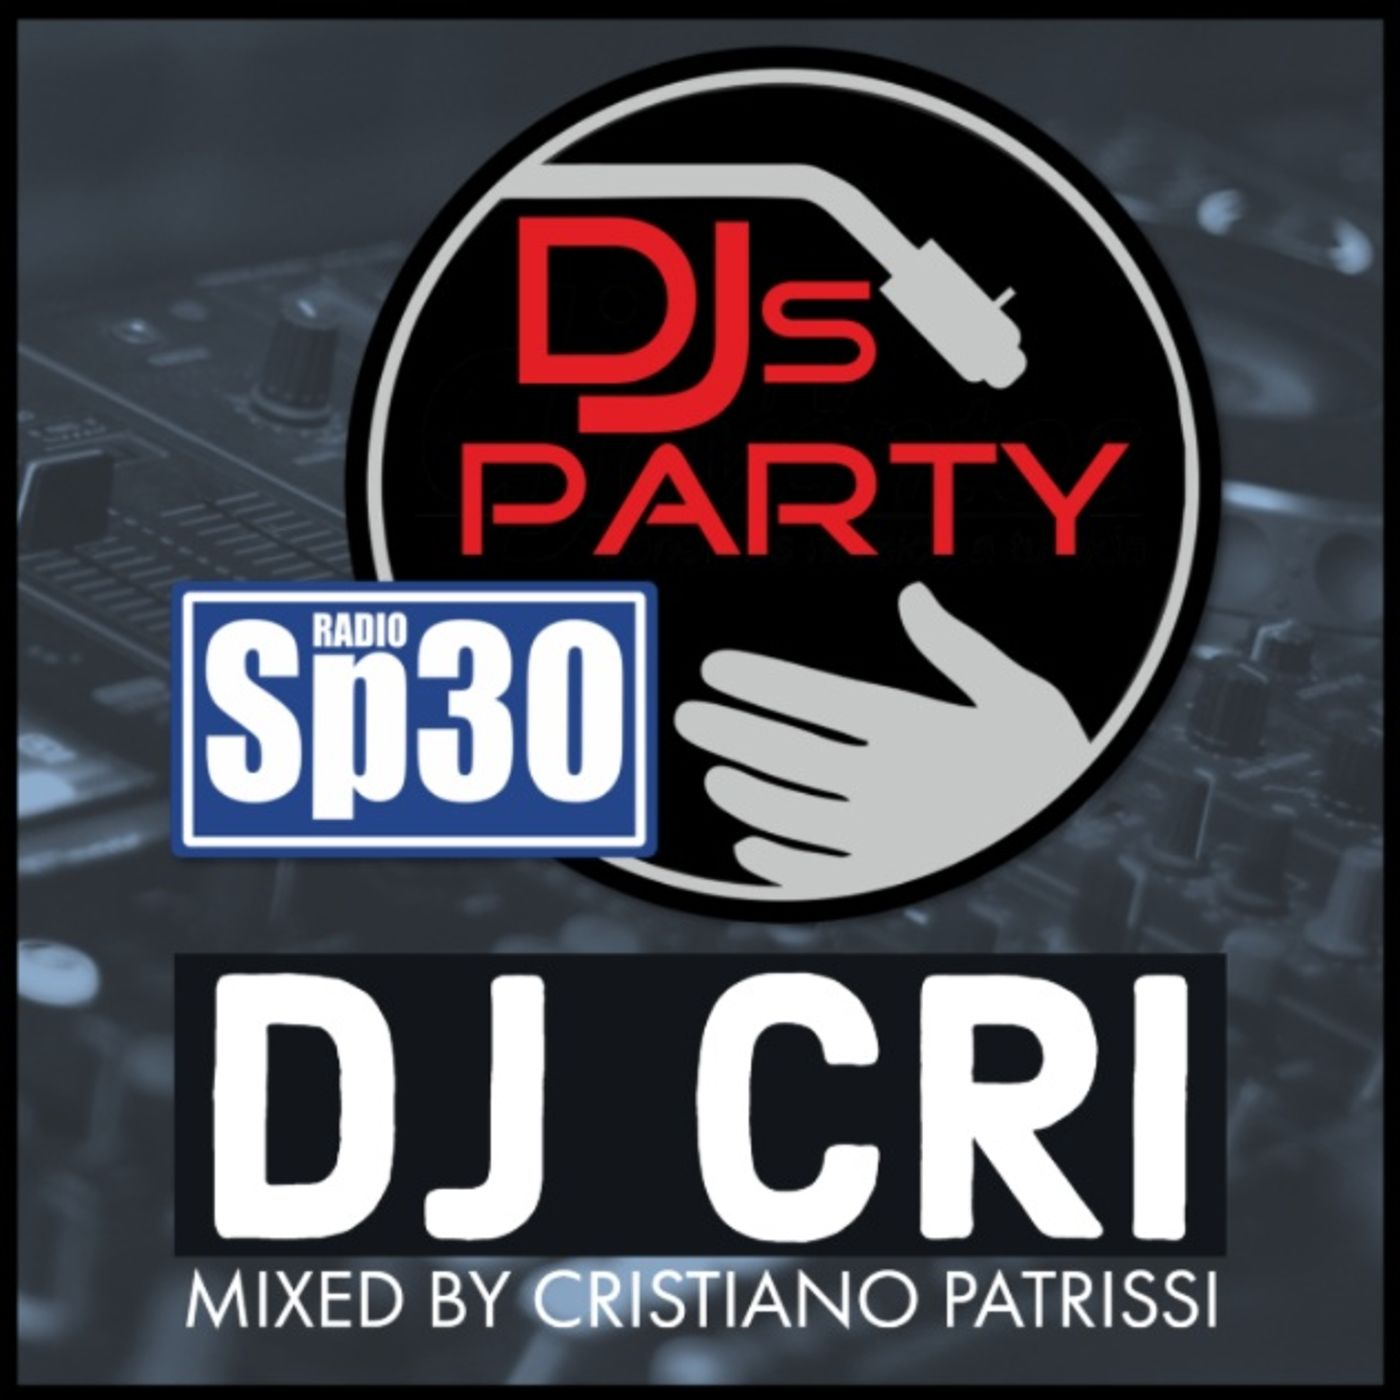 #djsparty - ST.2 EP.4 - Mixed By Cristiano Patrissi